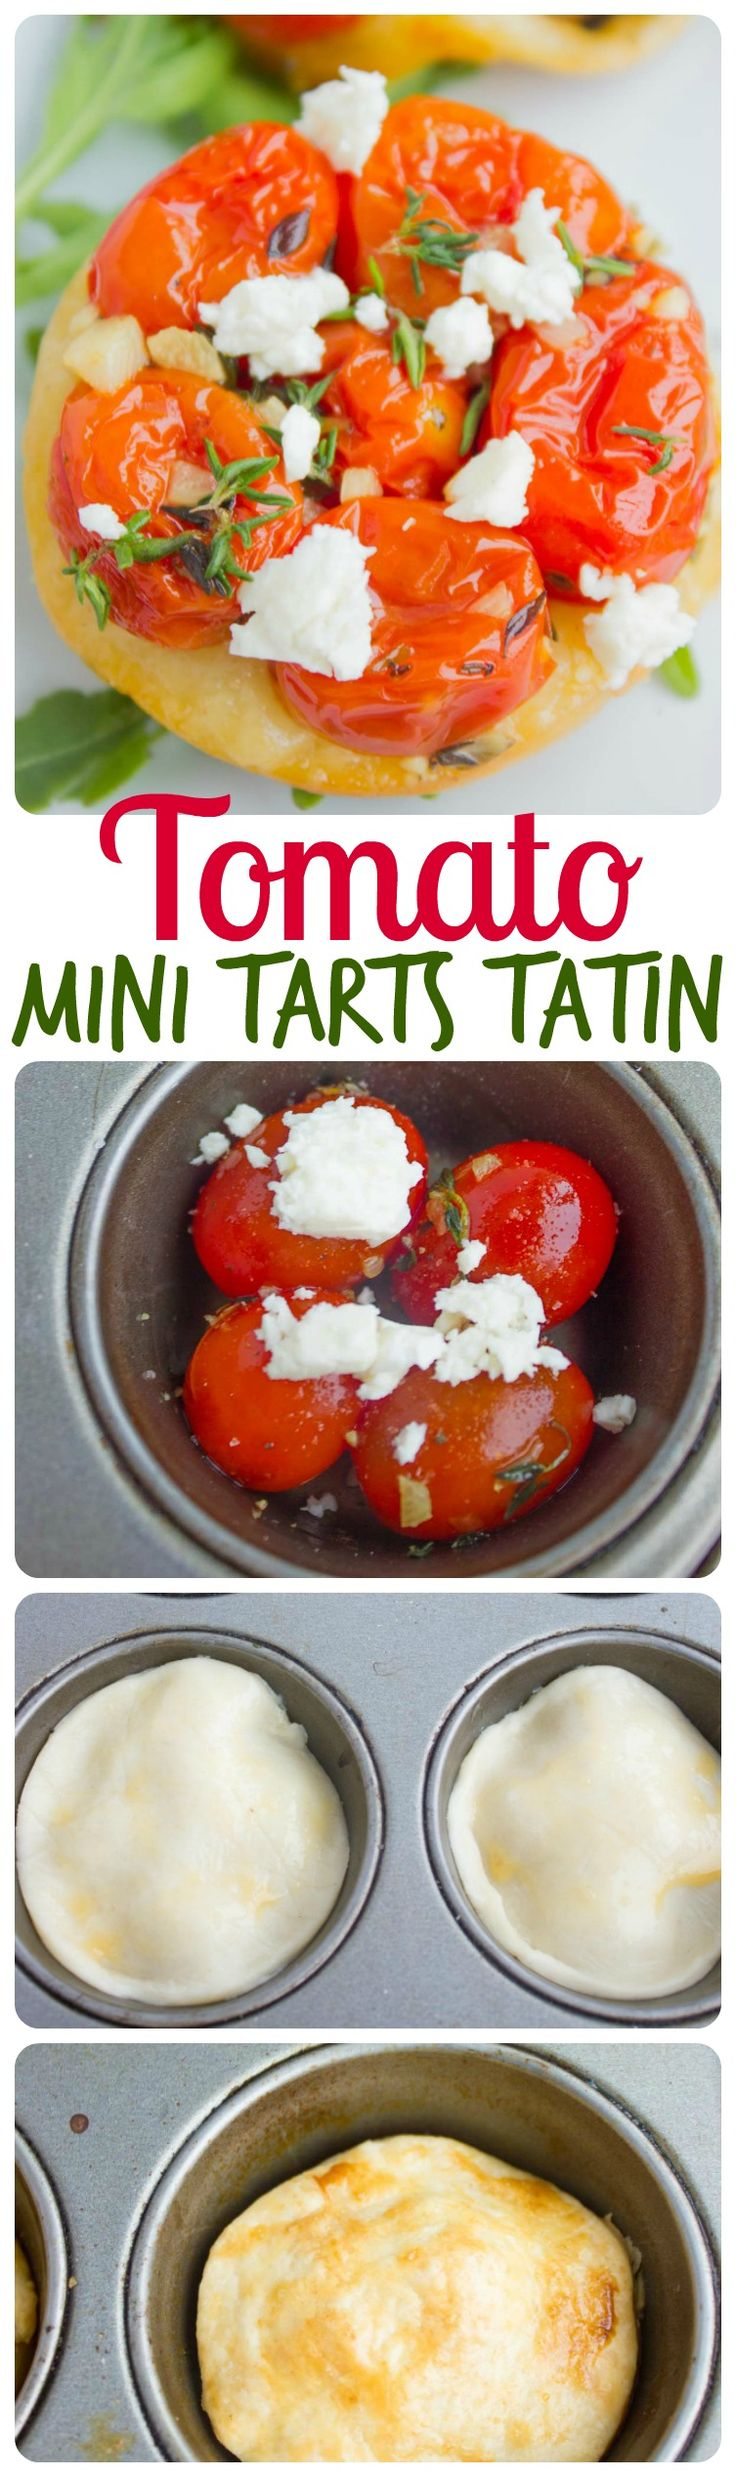 Tomato Tarts Tatin. An easy impressive appetizer that looks like you spent all day making it! Get this crowd pleaser step by step easy recipe! www.twopurplefigs.com